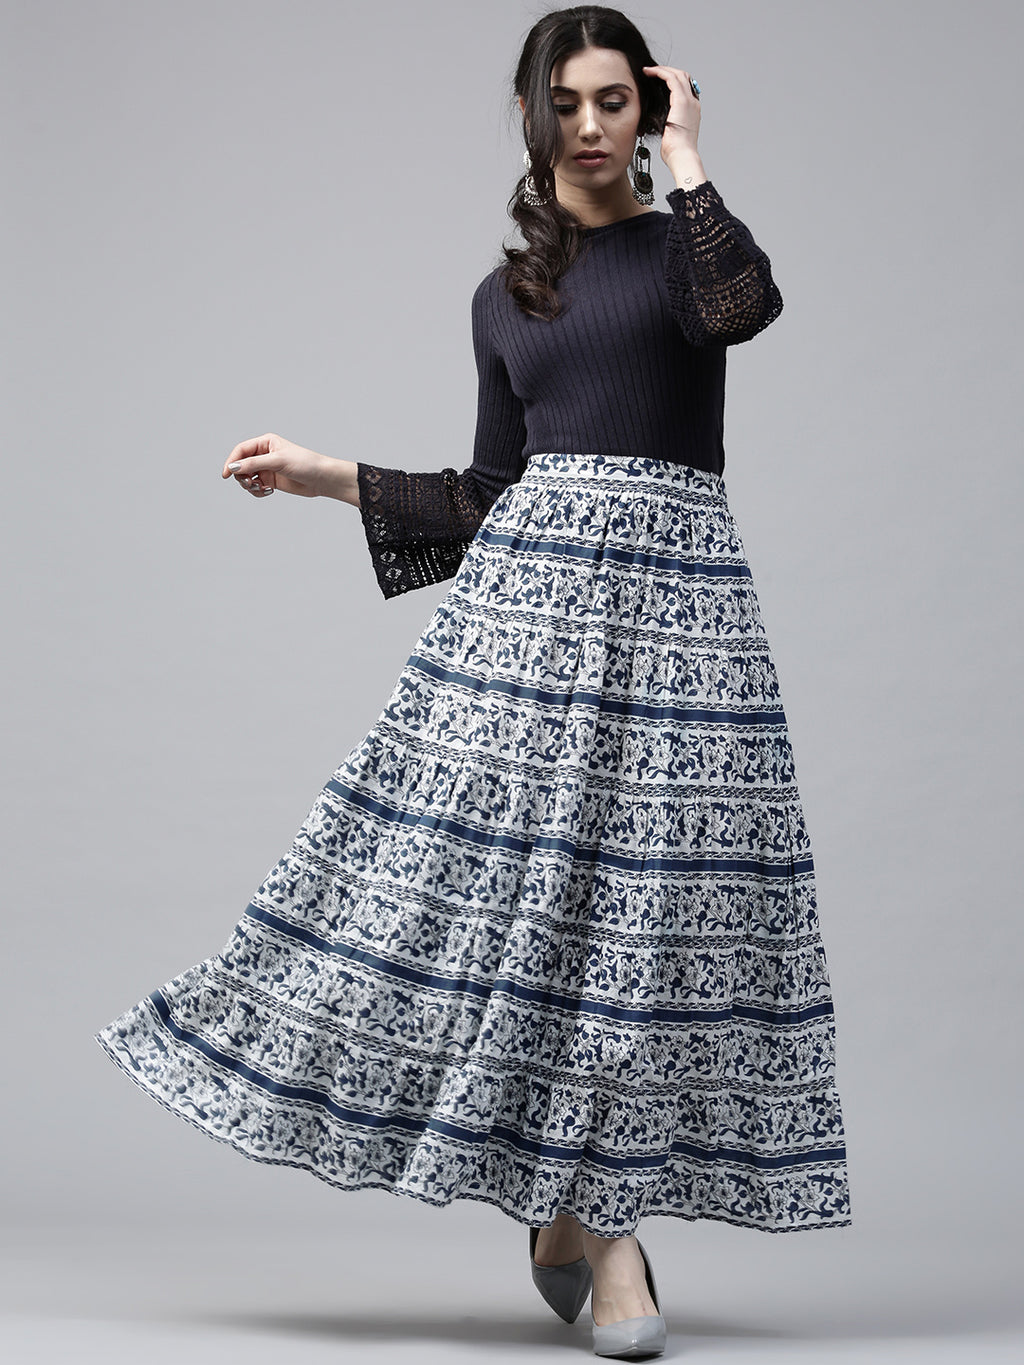 Navy Blue & White Printed Tiered Skirt | Znx4ever.com